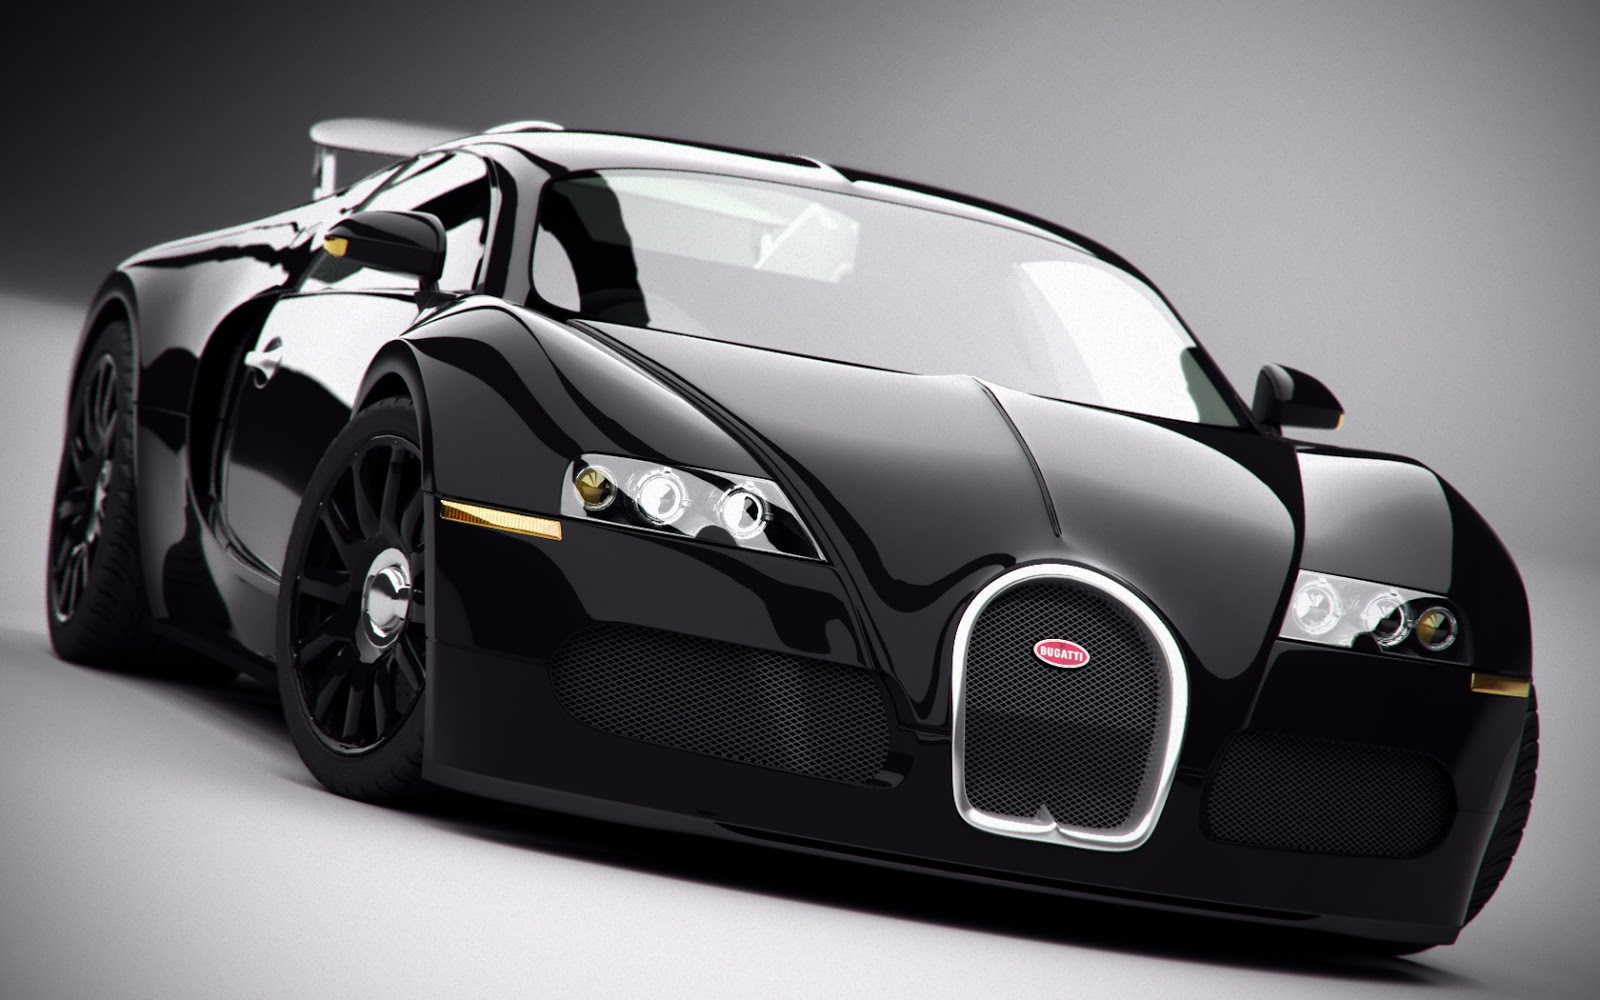 Hd Car Wallpapers,car Image,sports Car Wallpapers,car Wallpaper,3d Bugatti